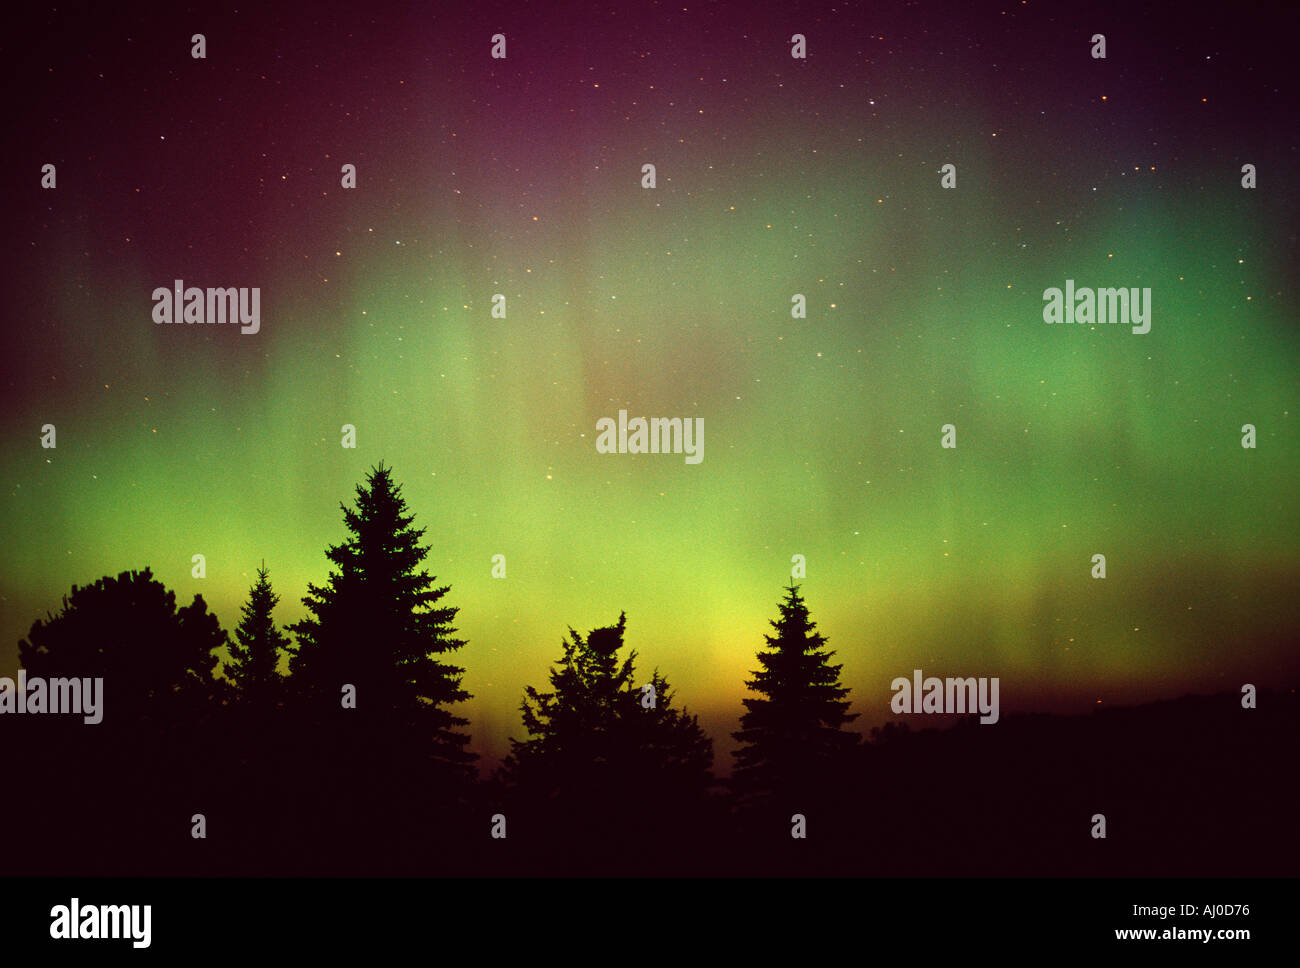 glowing green aurora borealis light up the night sky over a grove of